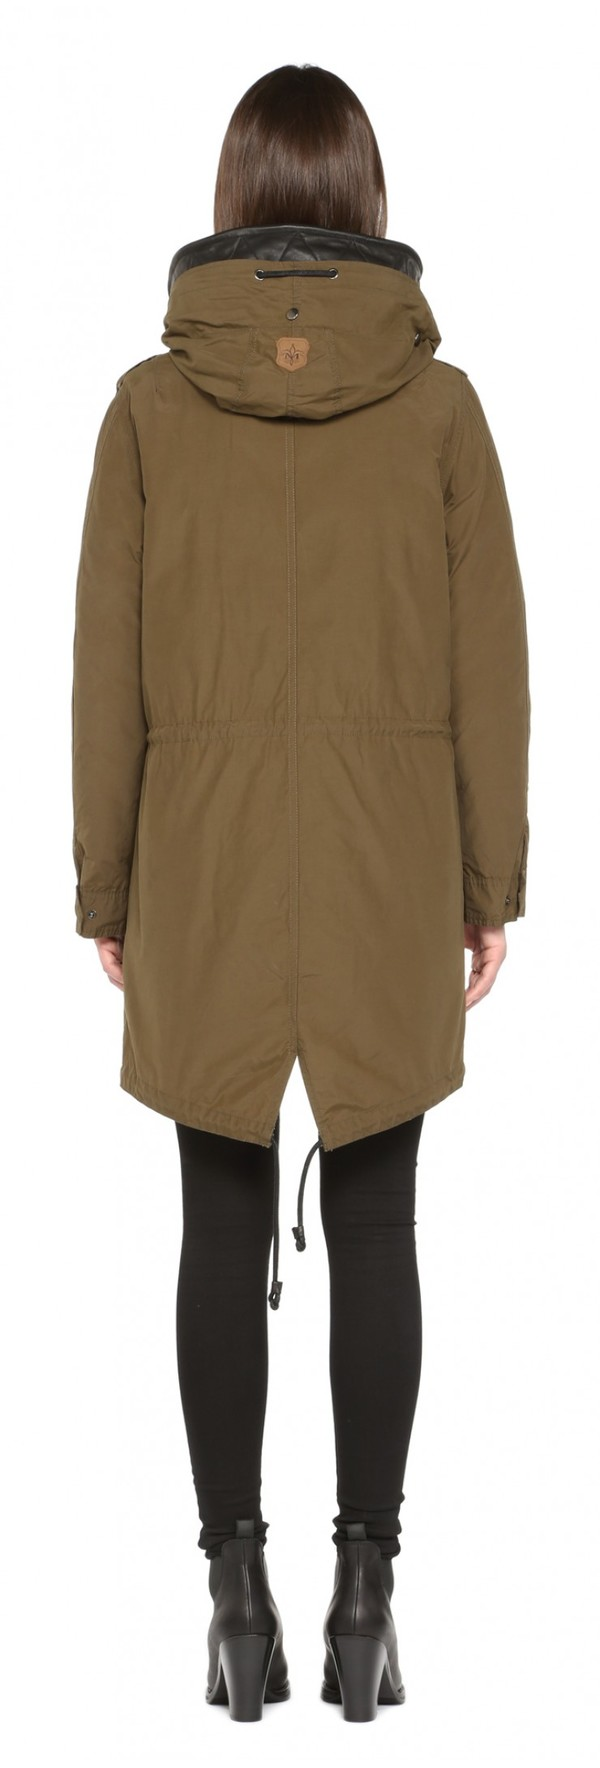 Mackage Khaki Waxed Cotton Sorrel Coat